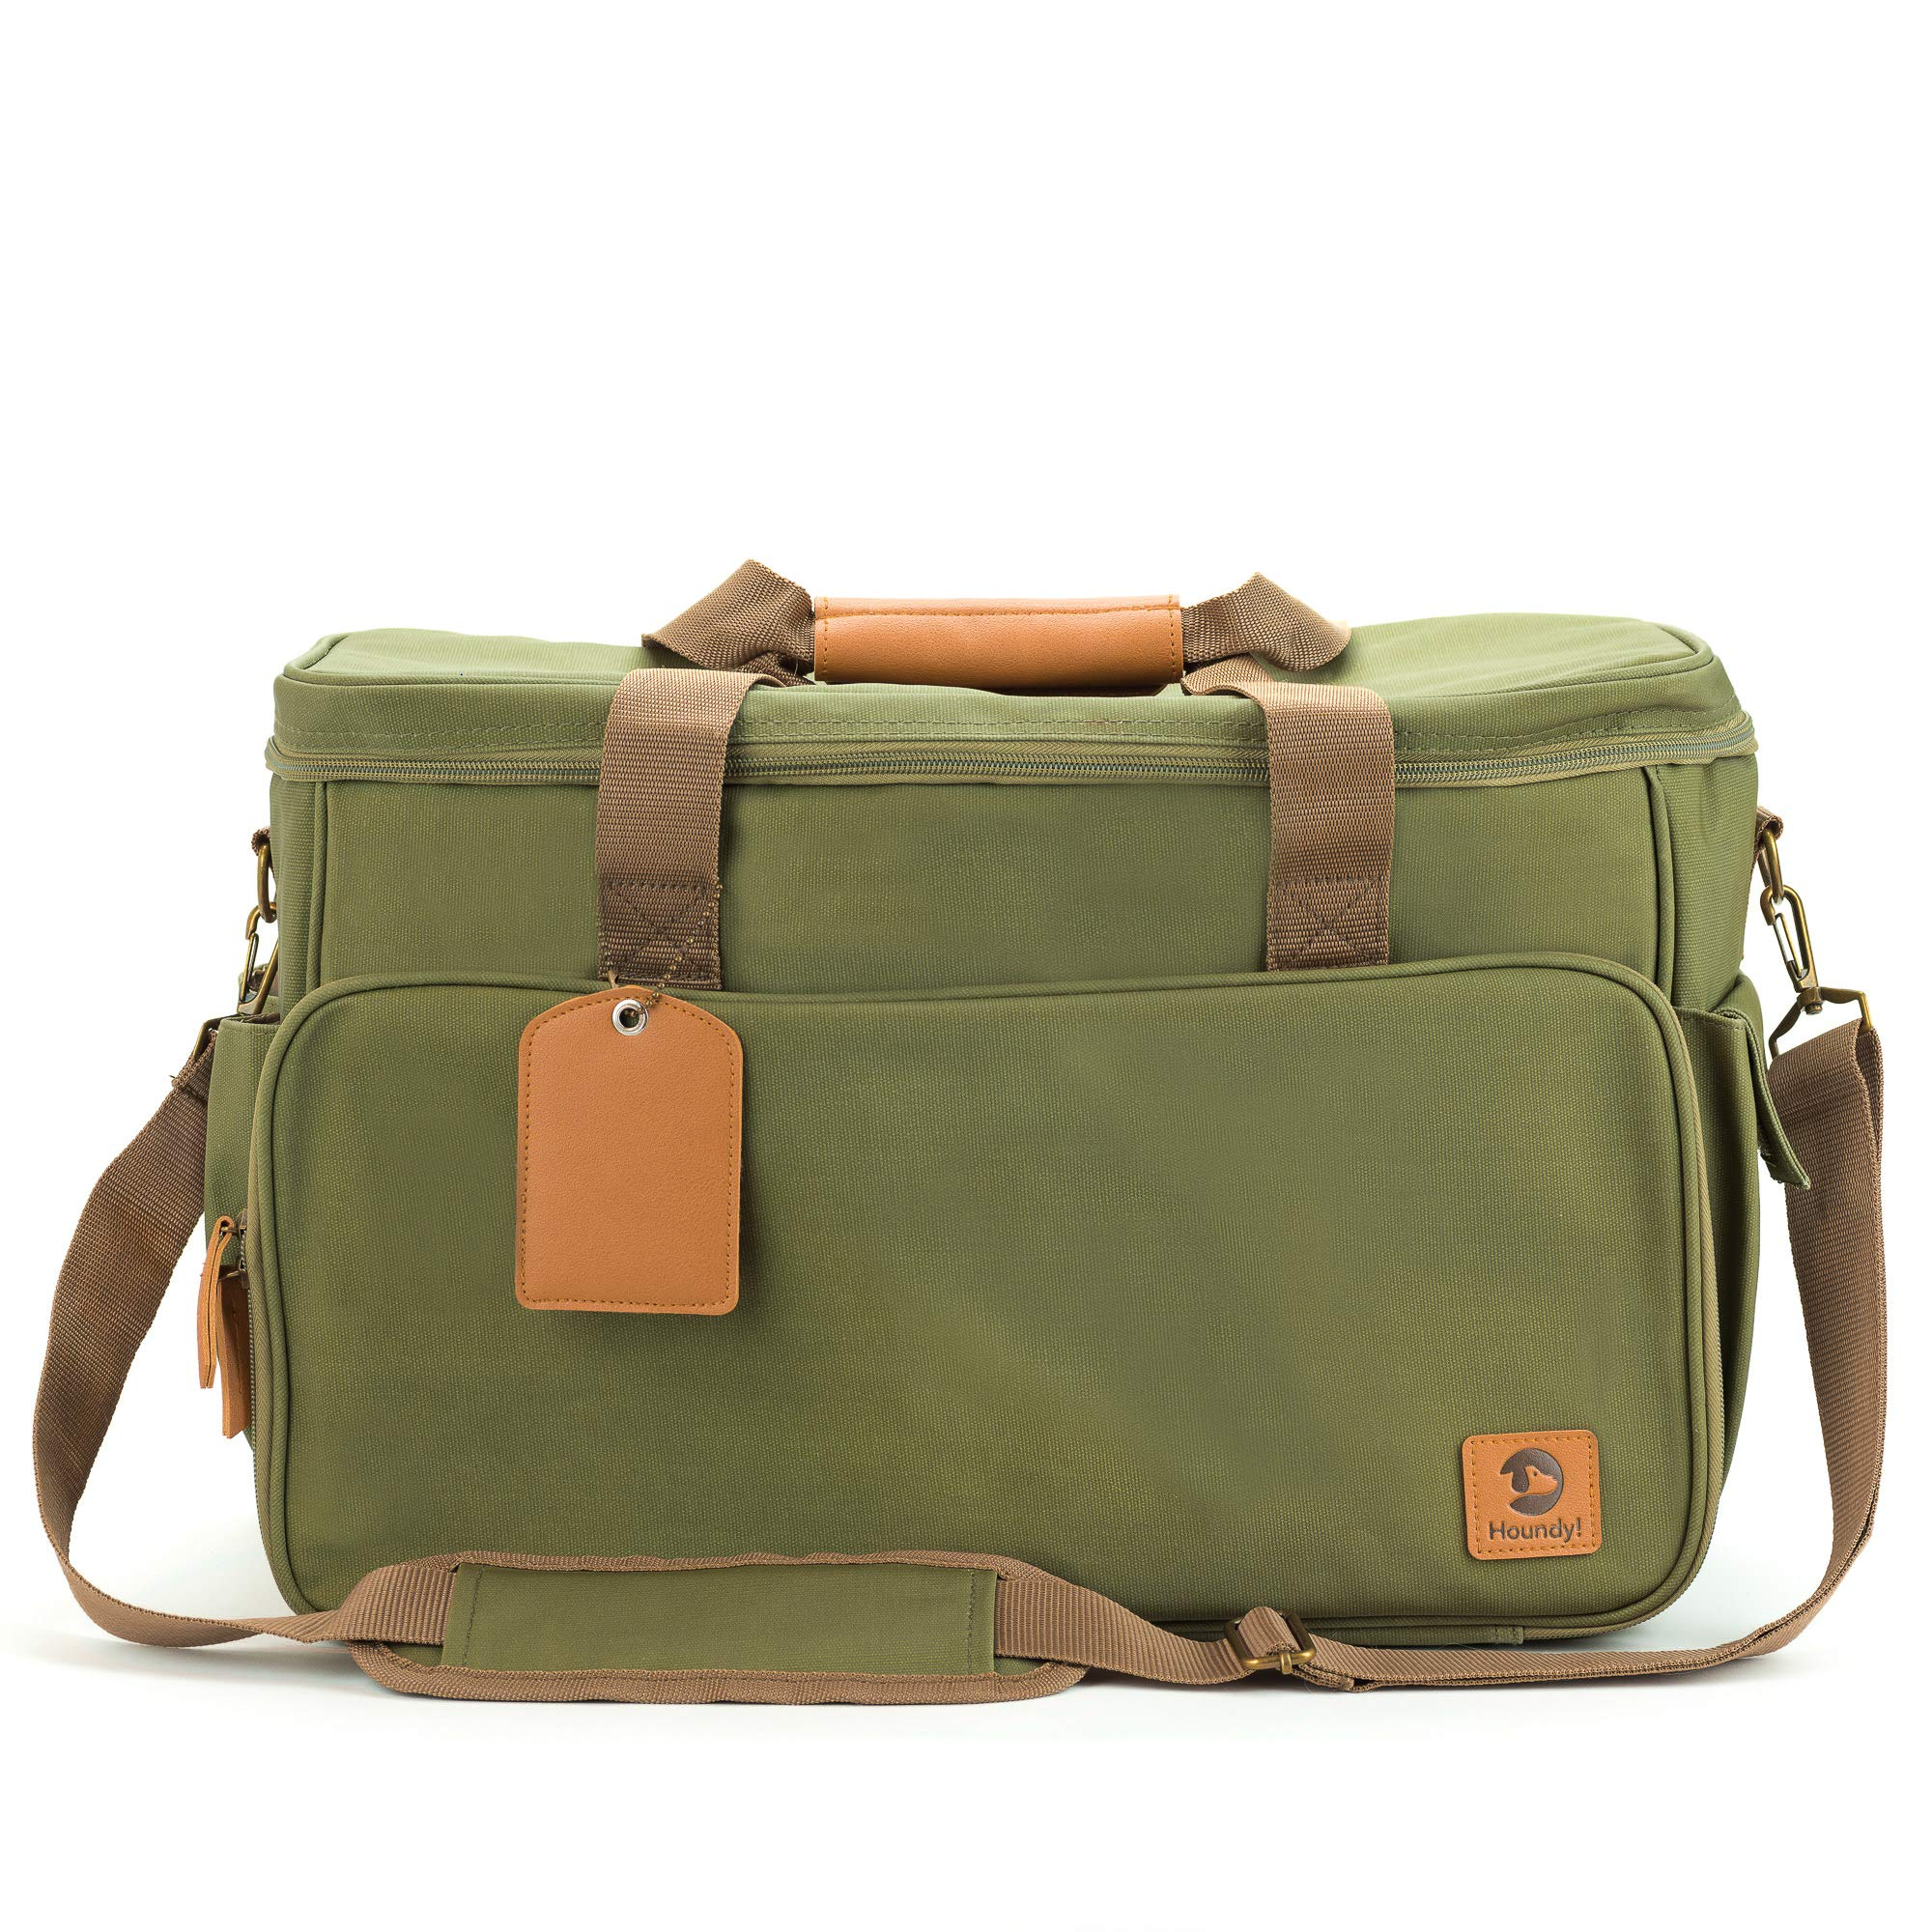 Houndy! Yoho Dog's Travel Bag. Large Stylish Waterproof Waxed Canvas. Perfect for Traveling, Camping, Outdoors, Carry-on Dog Bag. Two Pet-Safe Food Containers and Two Silicone Bowls (Juniper Green) by Houndy!